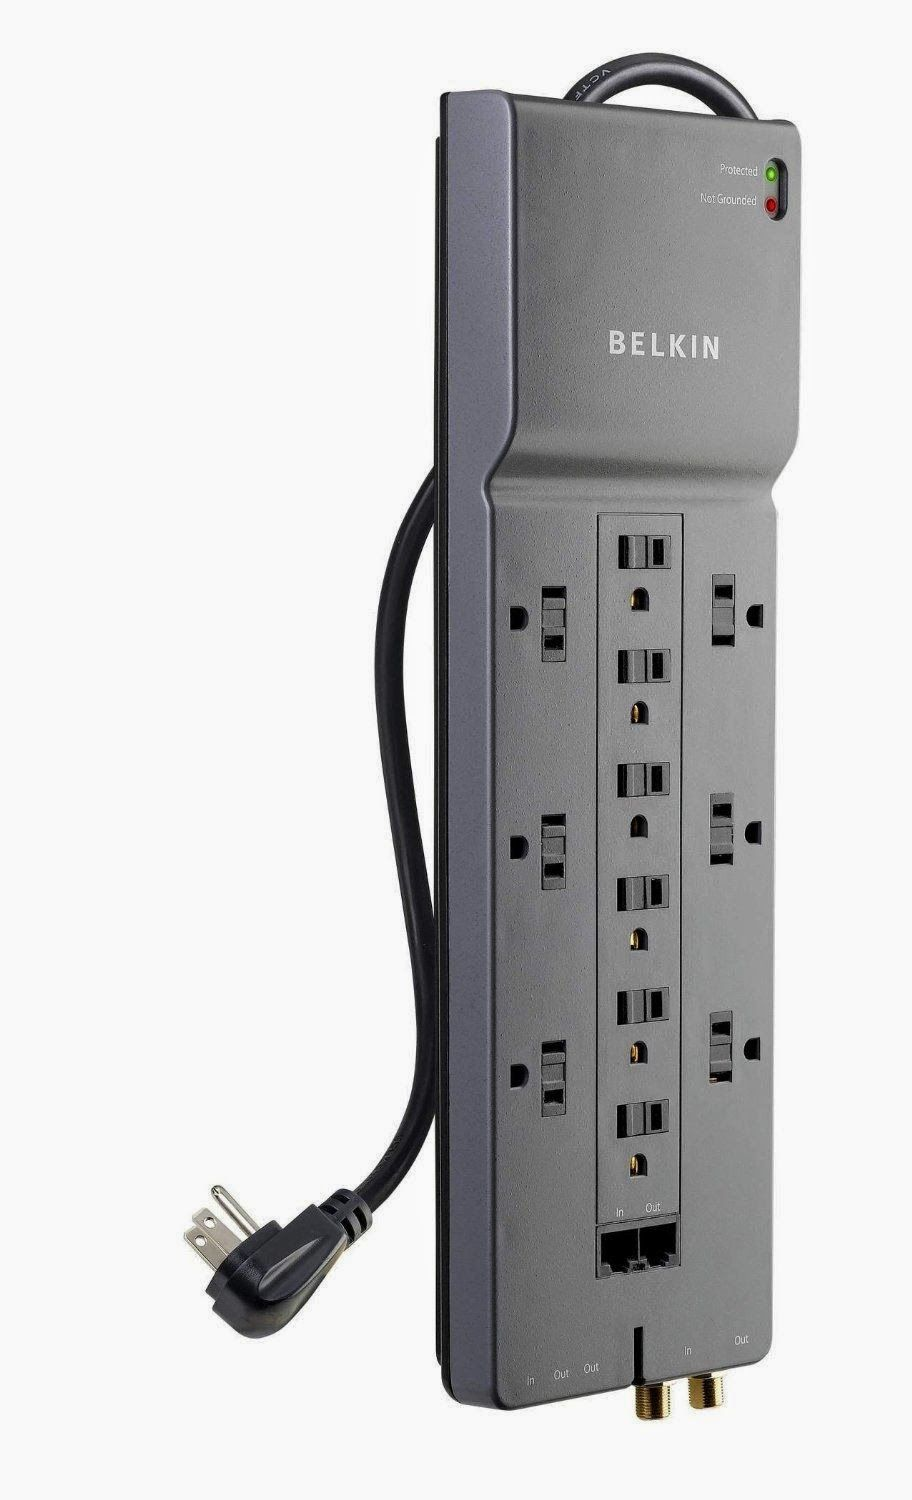 Hot Deal Belkin 12 Outlet Home Office Surge Protector With Phone Ethernet Coaxial Protection And Extended Cord Surge Protectors Surge Protector Home Protection